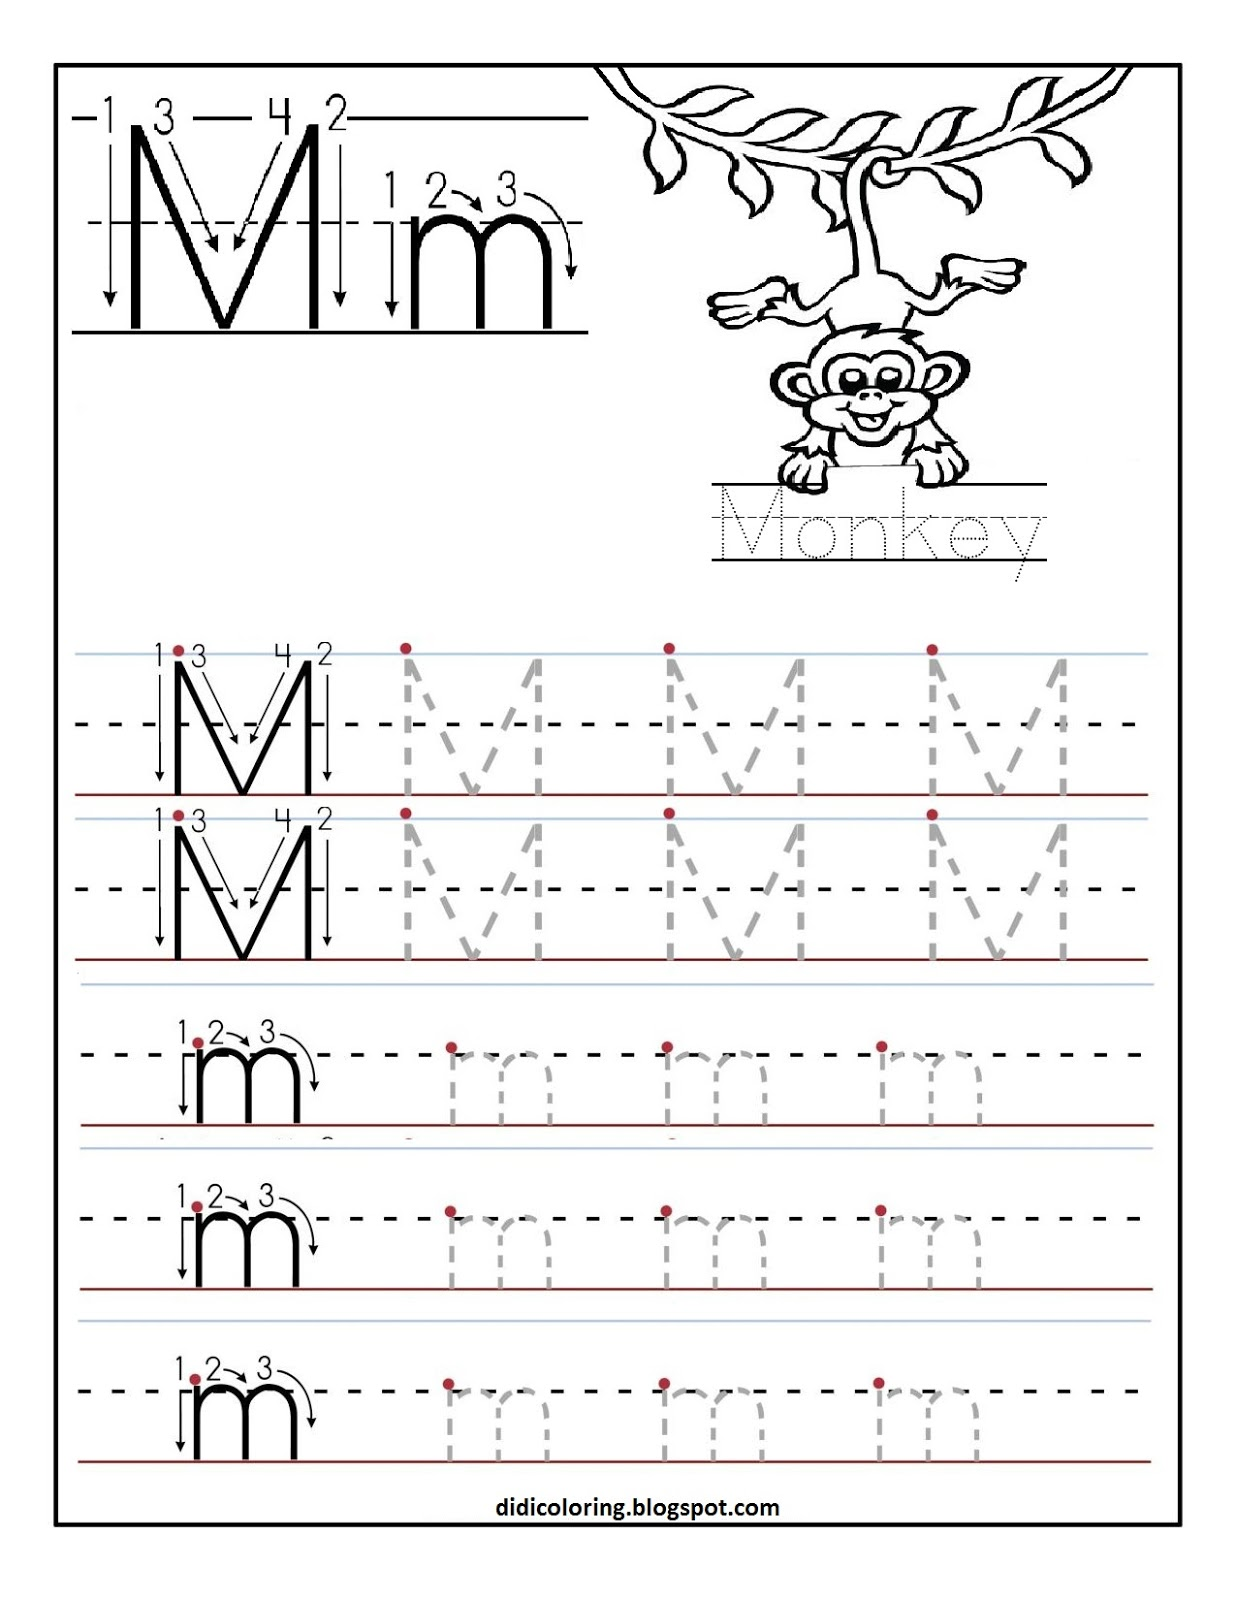 Free printable worksheet letter M for your child to learn and ...